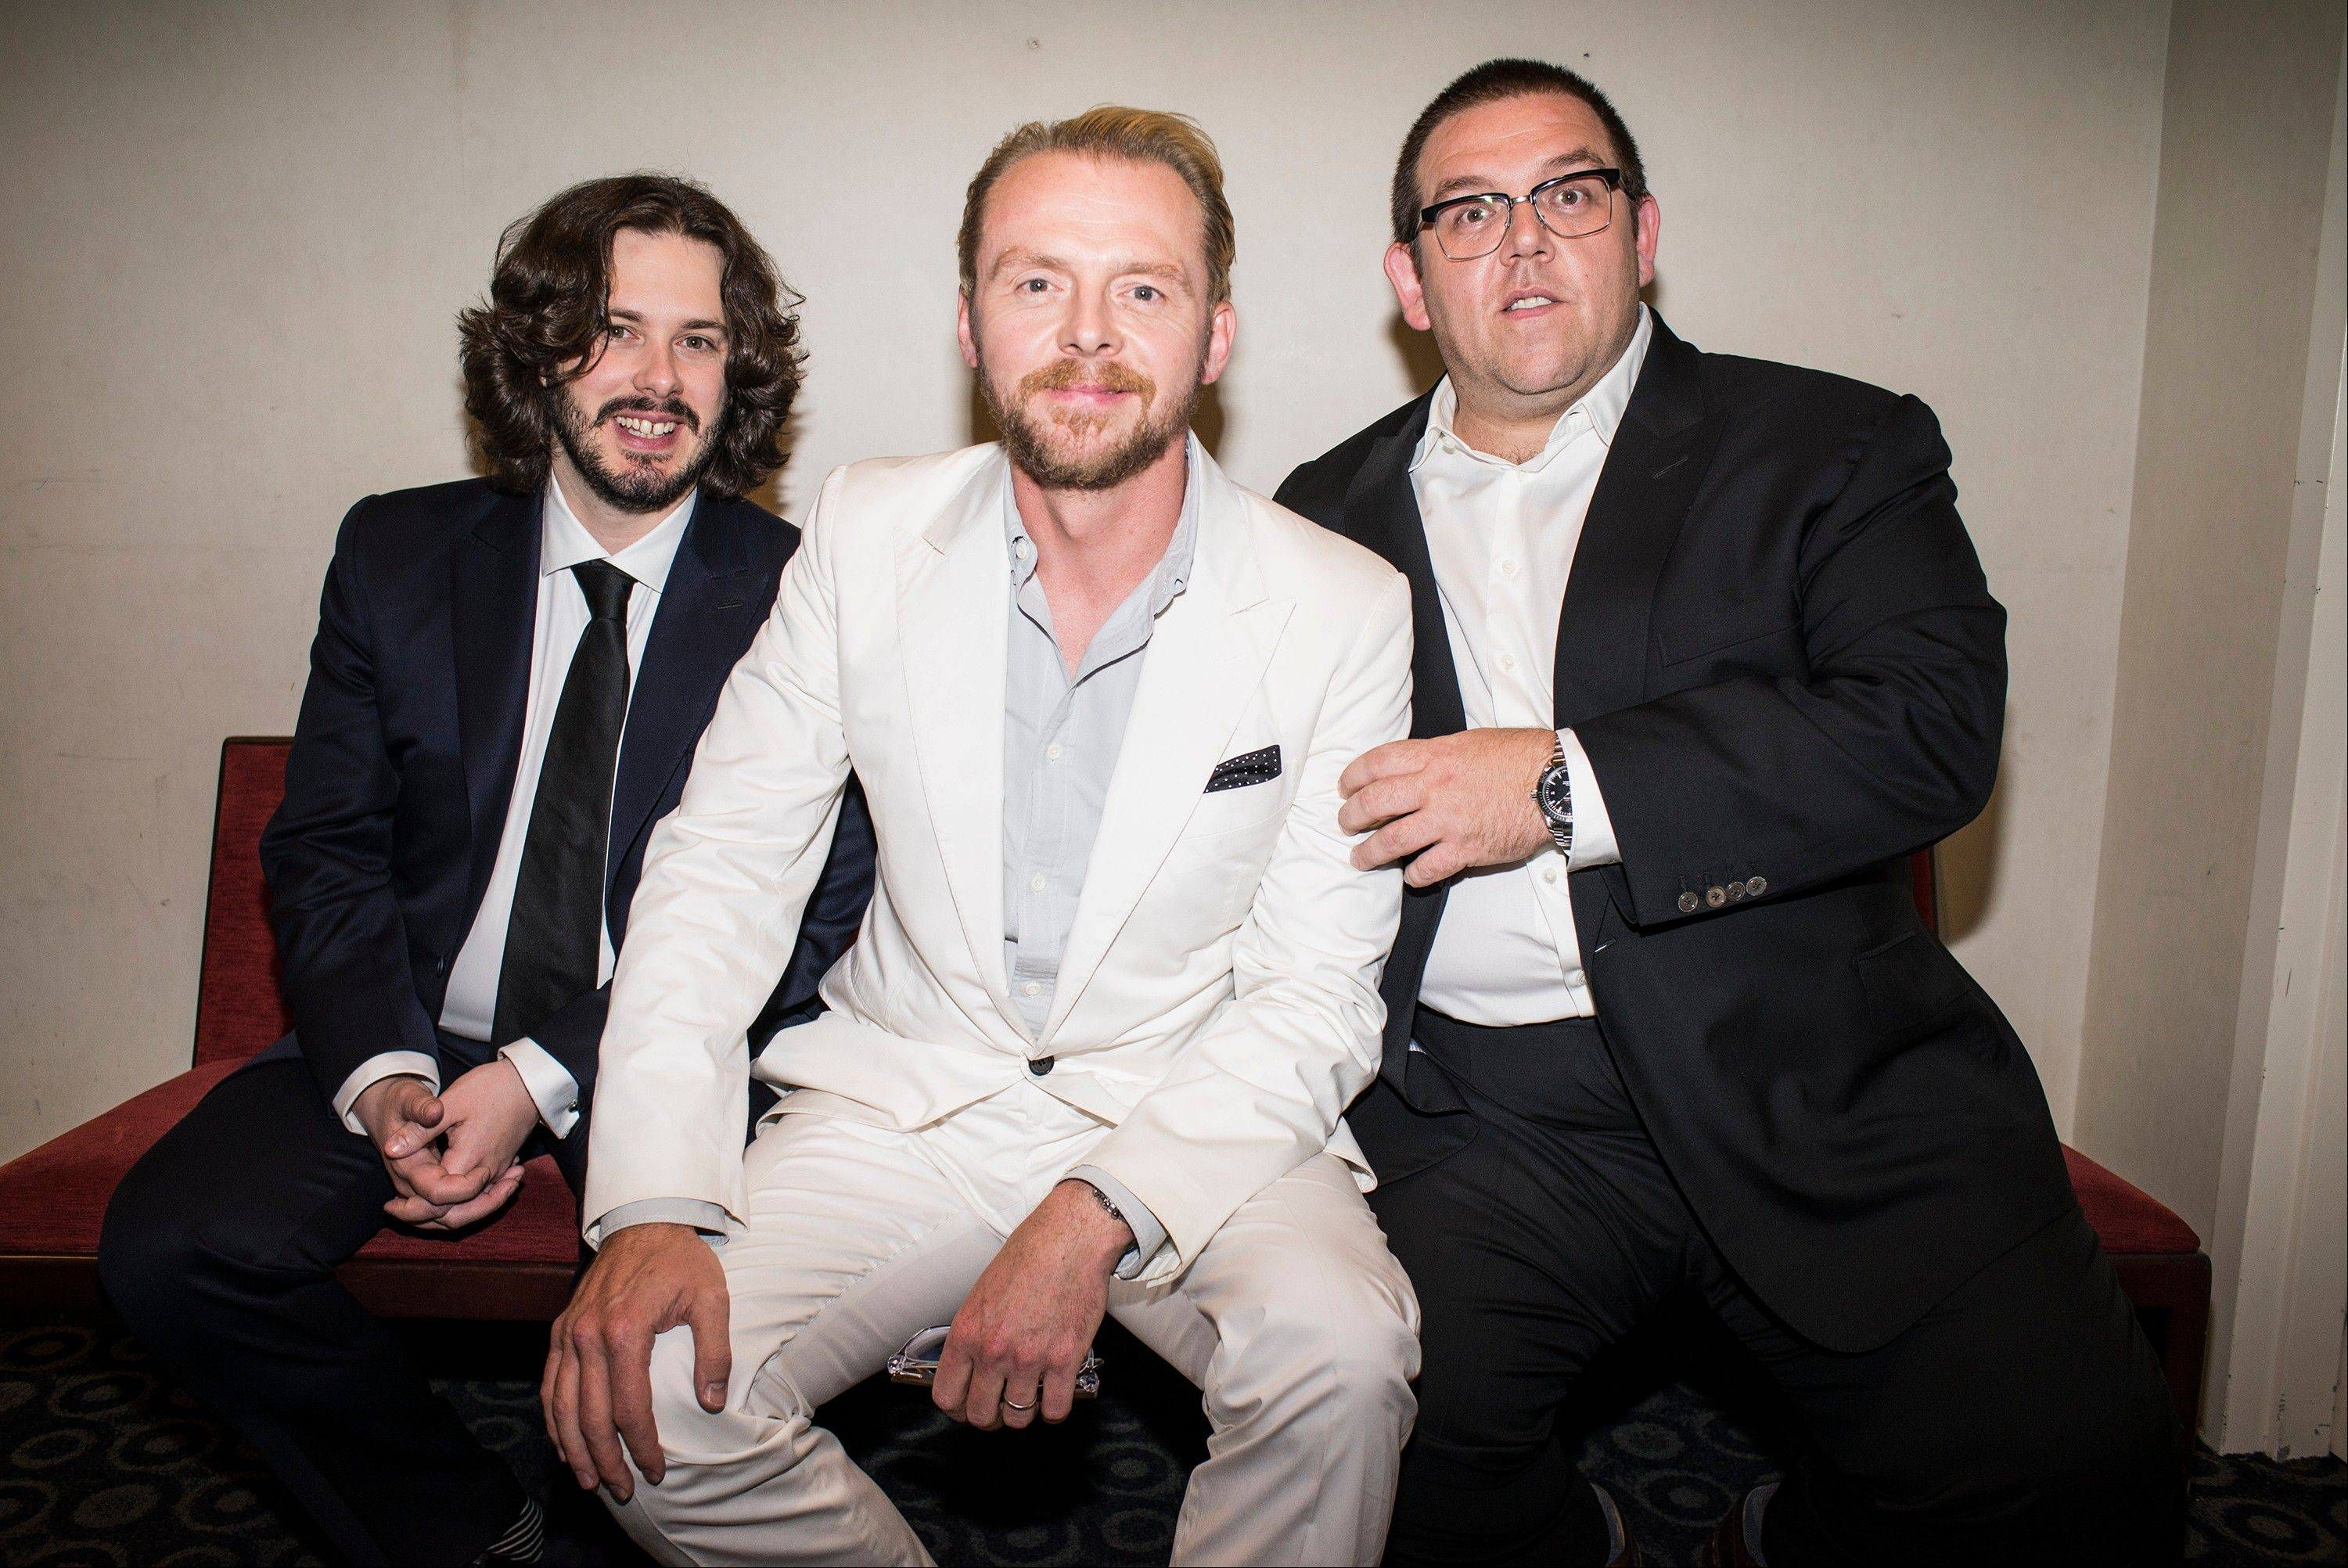 It�s not the end of the world, but �The World�s End� marks a creative conclusion for director Edgar Wright, left, actor Simon Pegg and actor Nick Frost. For the British trio behind �Shaun of the Dead� and �Hot Fuzz,� the recent release of �The World�s End� completes a trilogy.